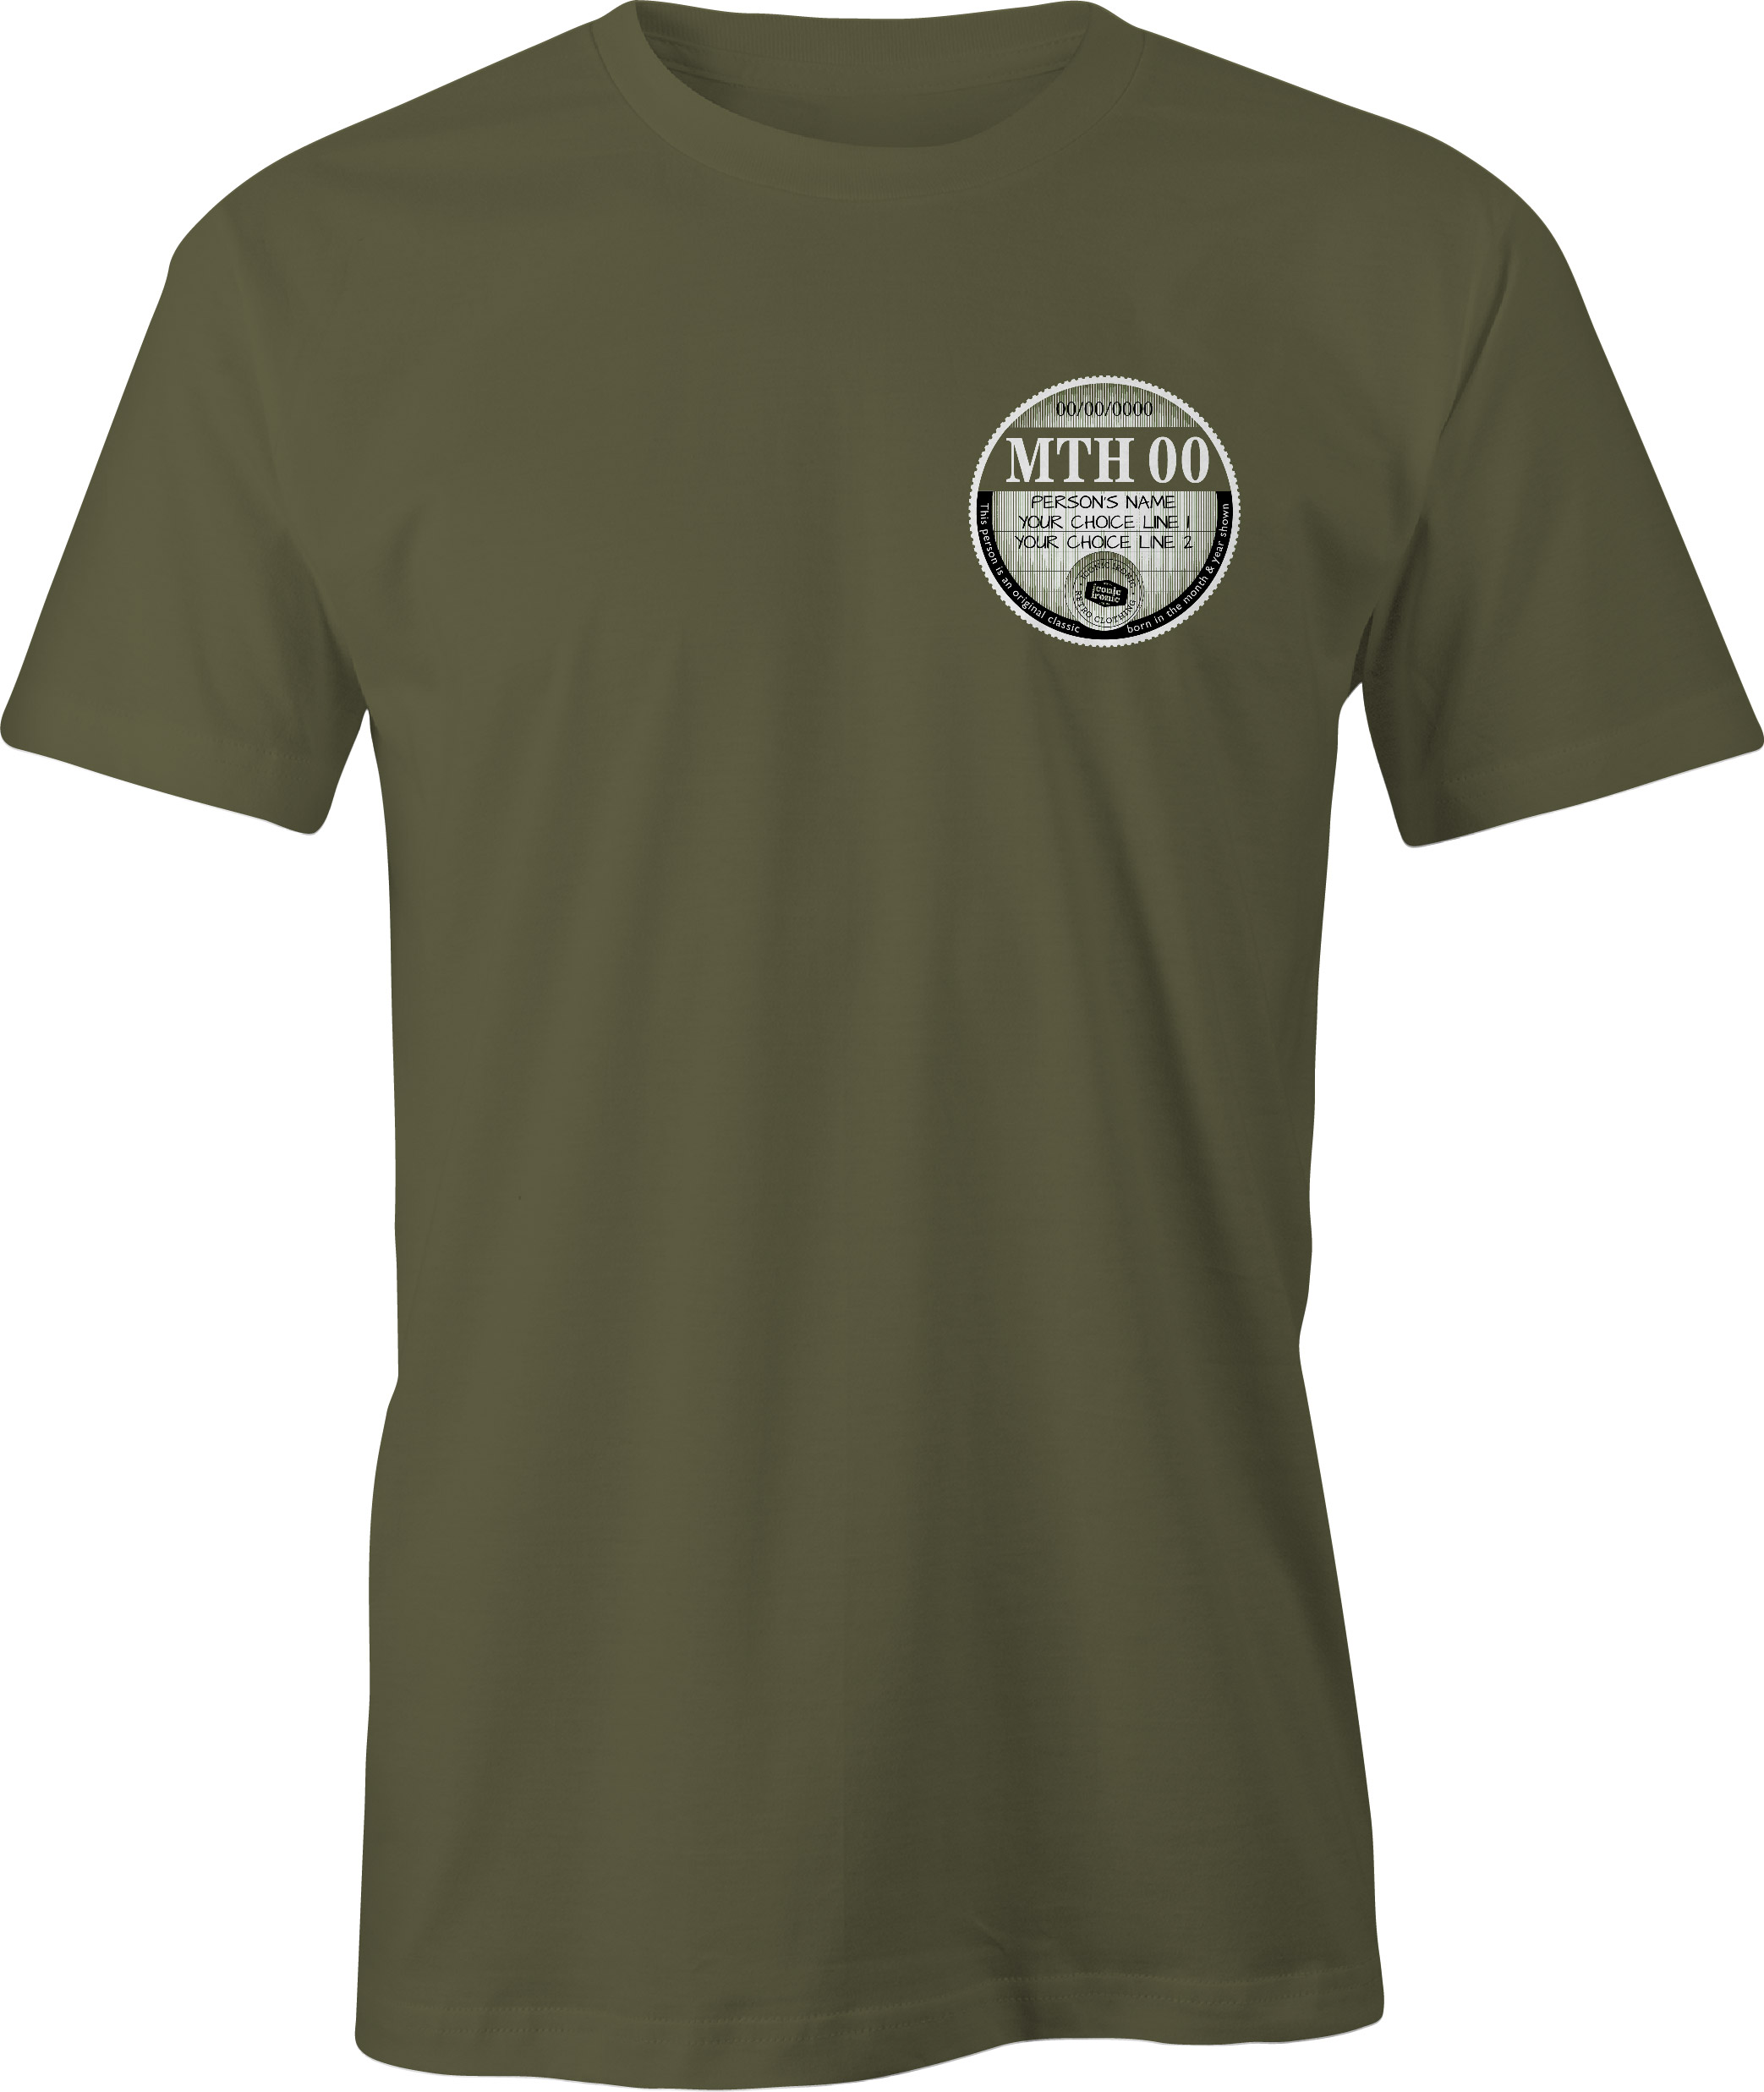 Car Tax T Shirt Military Green Left Chest Graphic Generic Example T Shirt